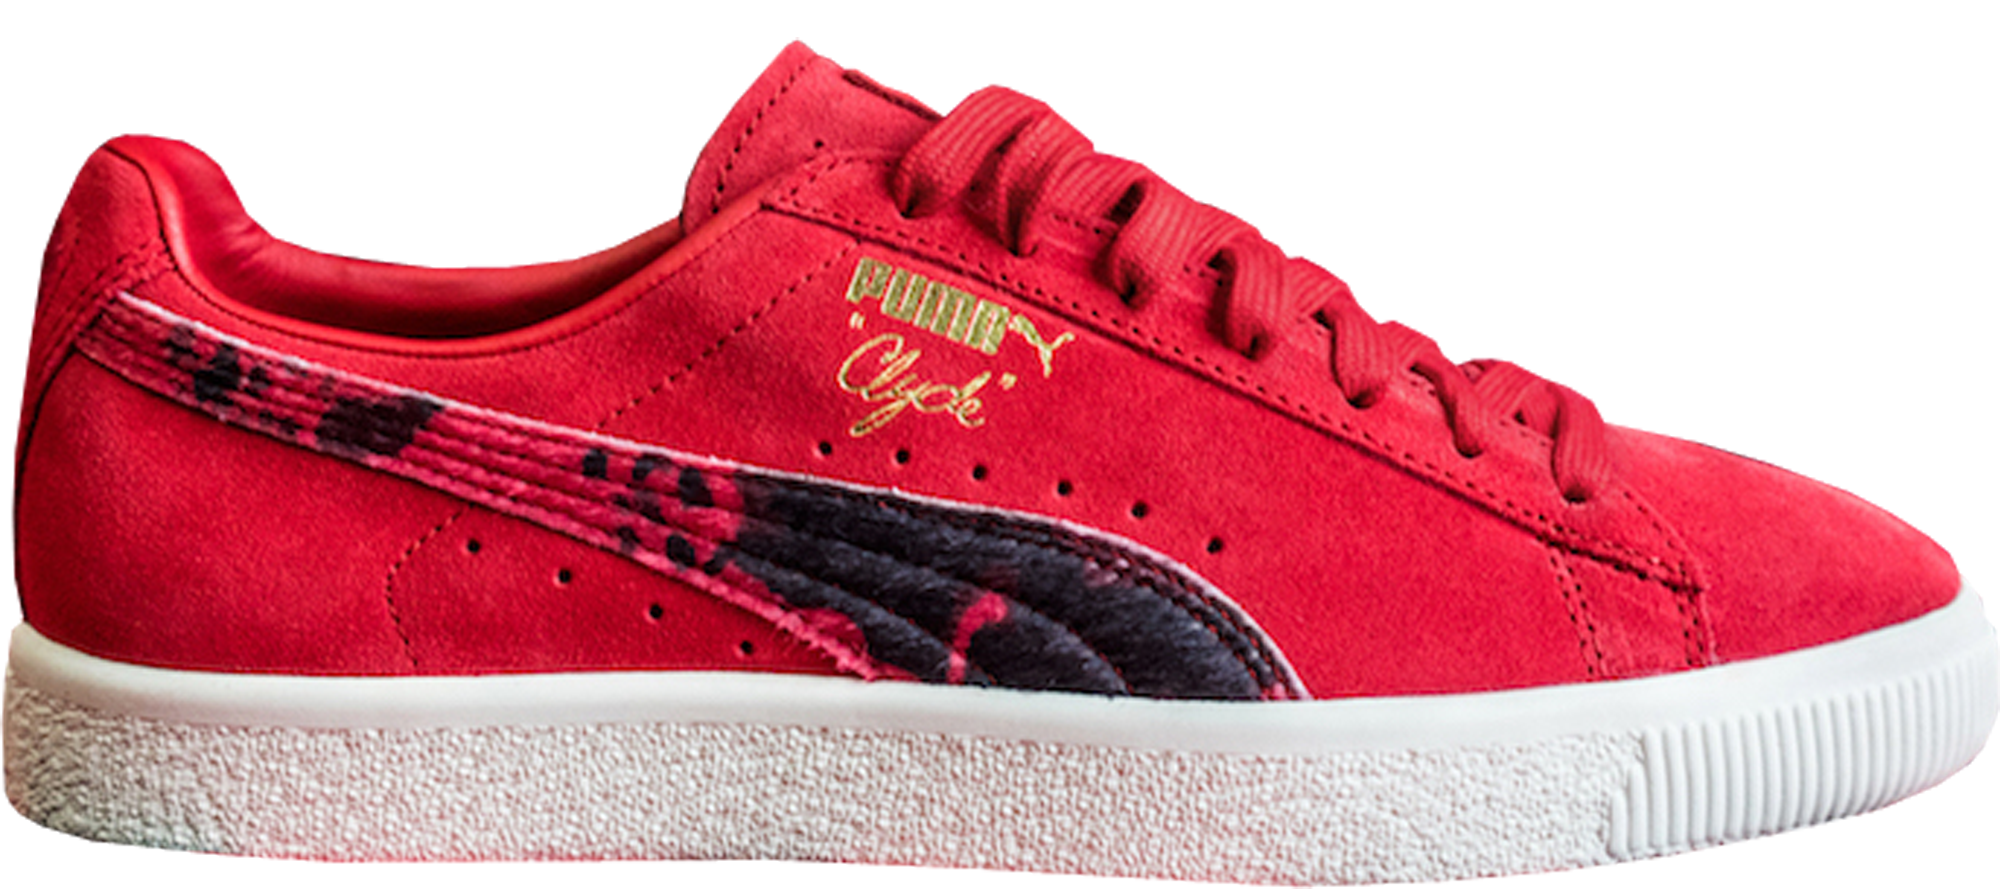 Puma Clyde Packer Shoes Cow Suit Red